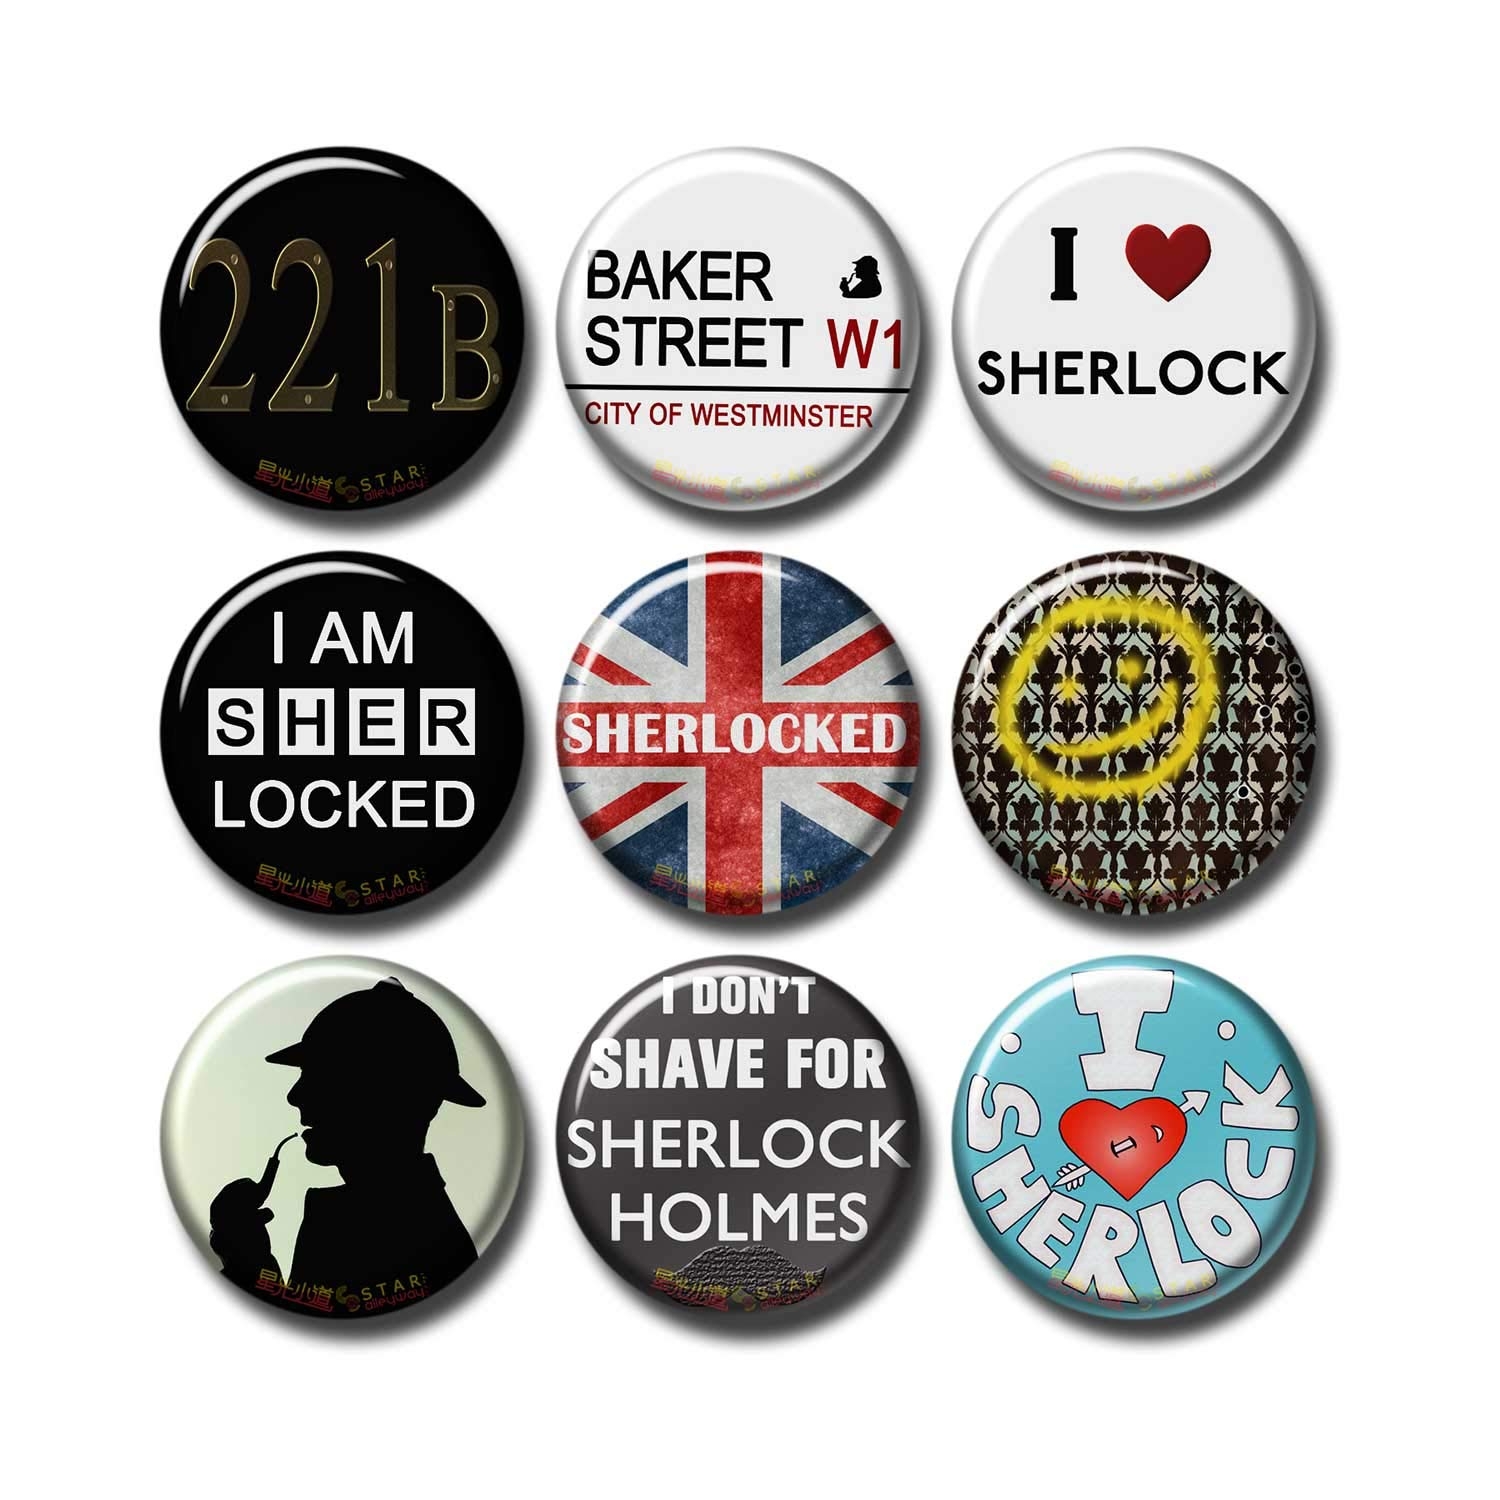 Sherlock BBC 9 pcs Button Fridge Magnets Set Pack TV Series 010-P006 Sherlock Holmes Logos I heart Sherlock,Party Favors Supplies Gifts Home Decor (Round 1.5 inch|3.7cm)